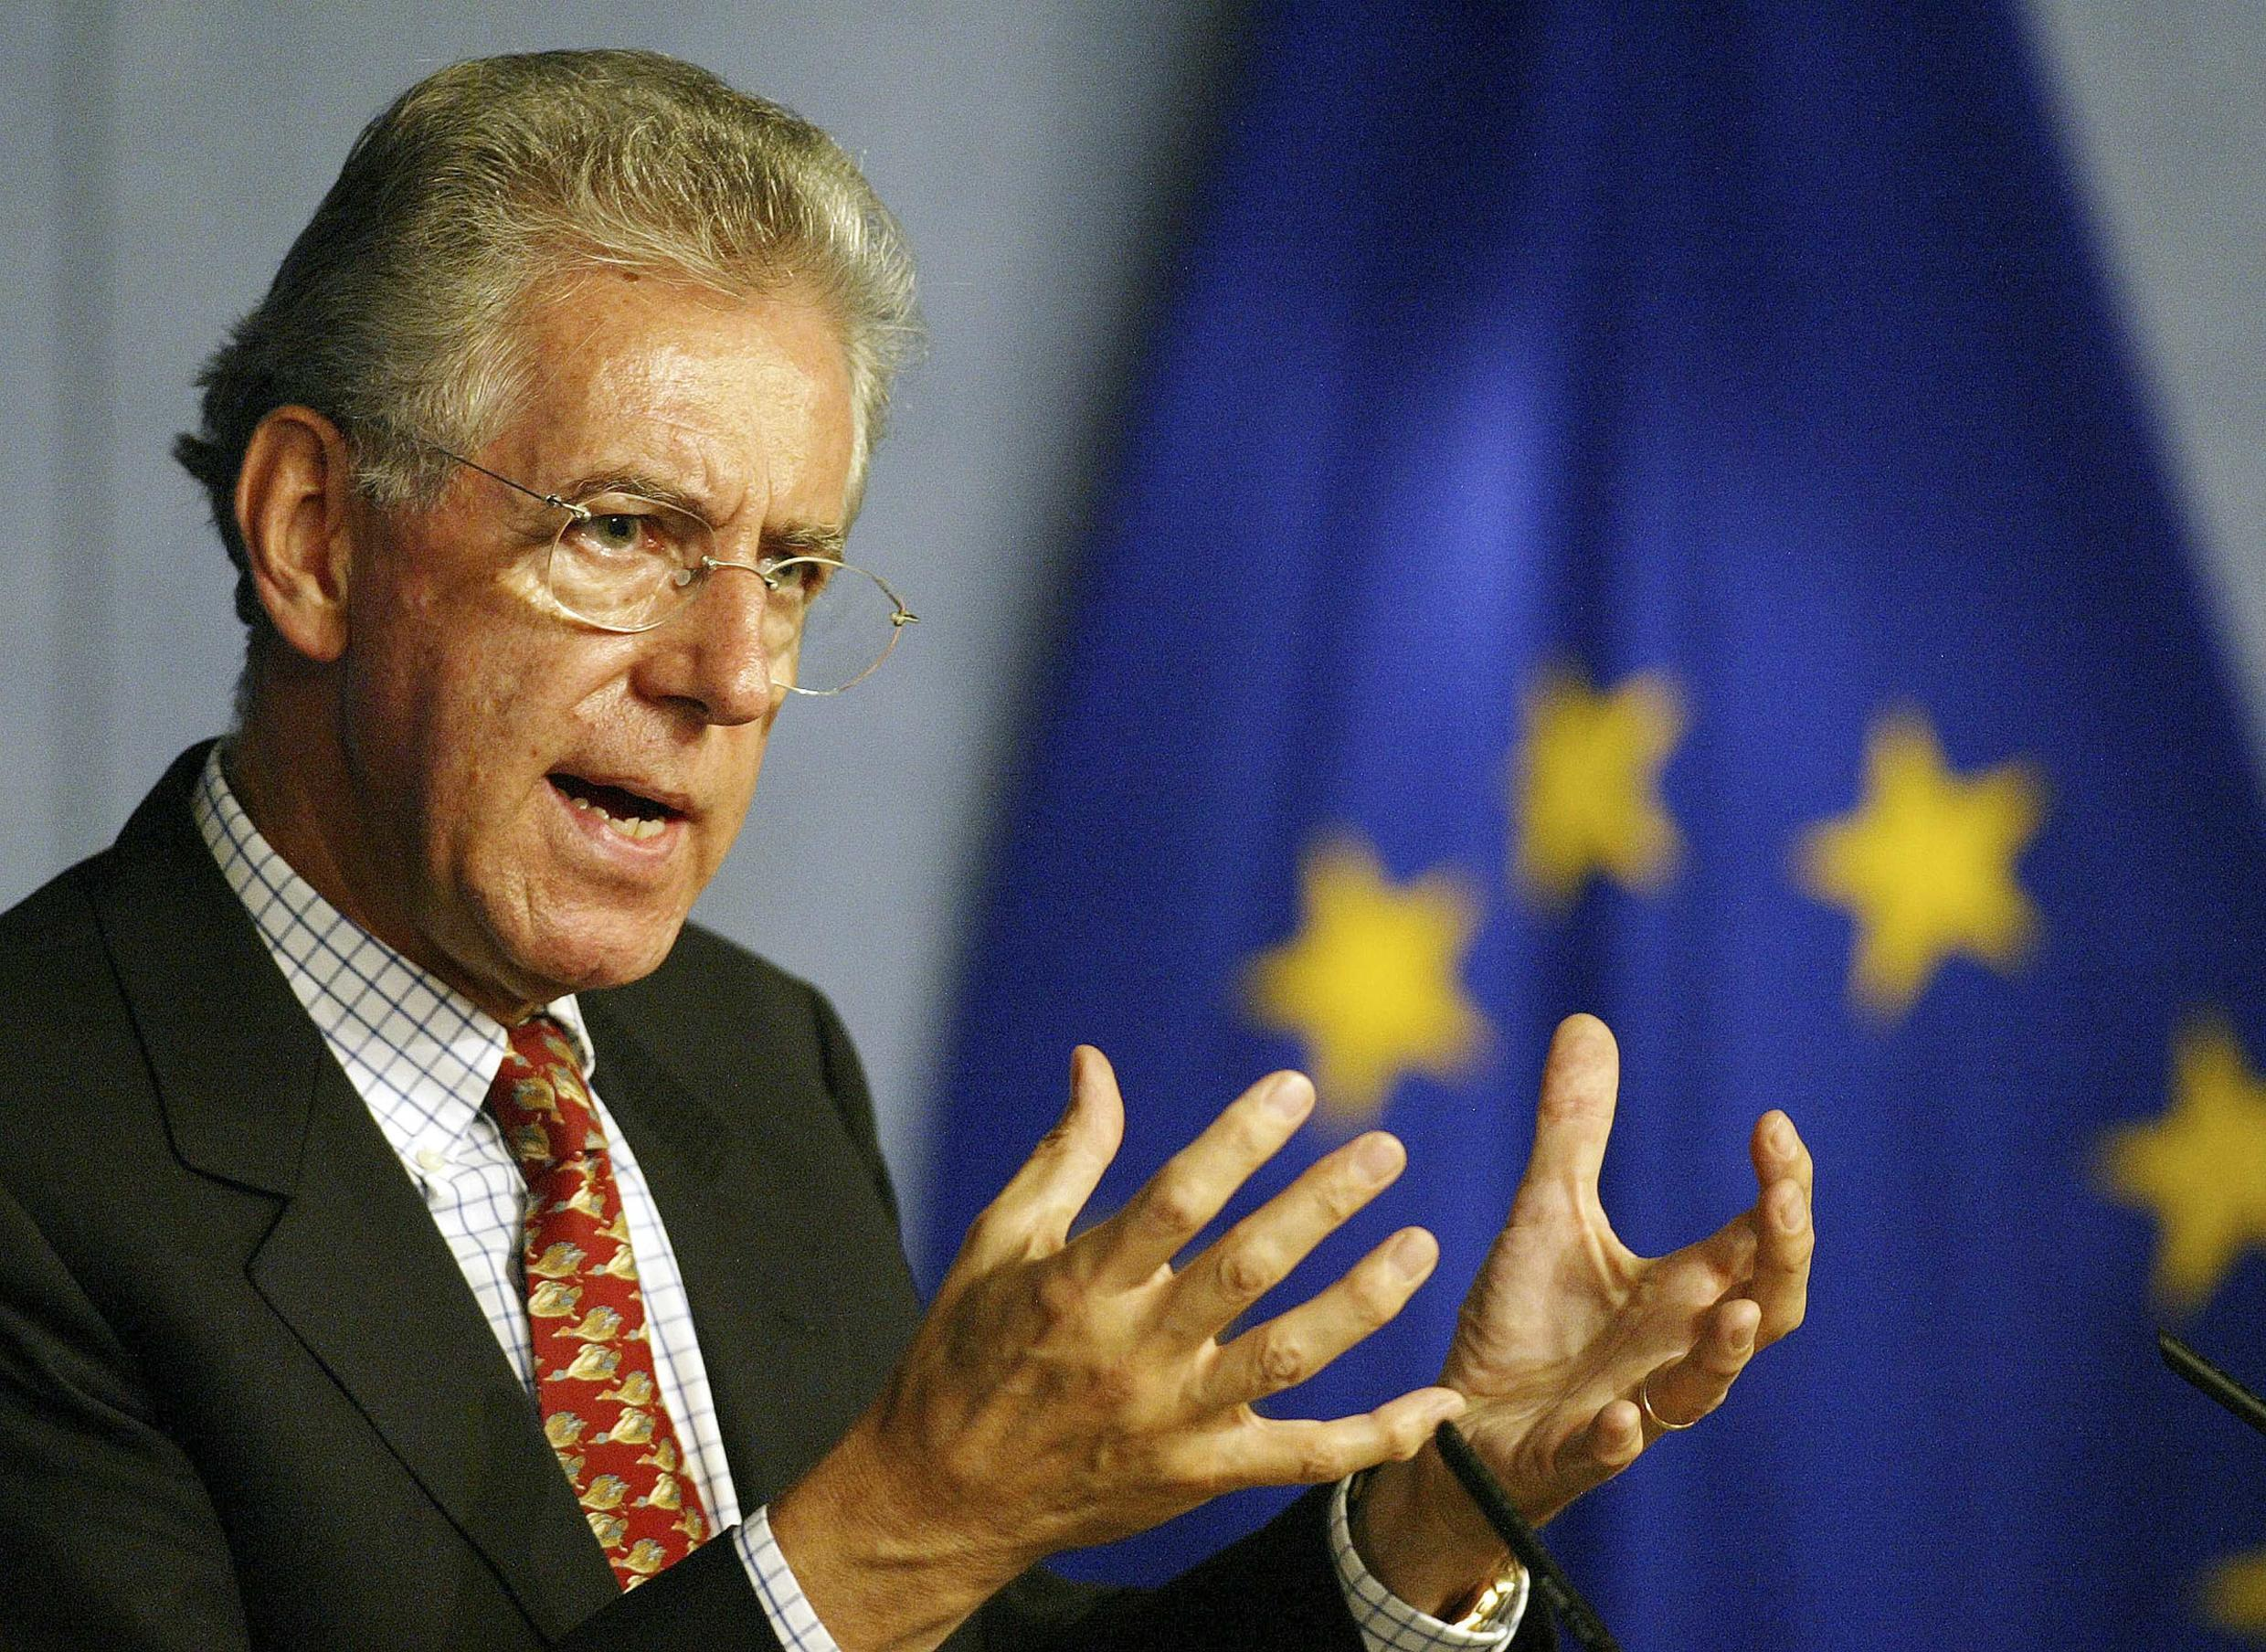 Man tipped to replace Silvio Berlusconi as PM, Mario Monti, ahead of crucial vote